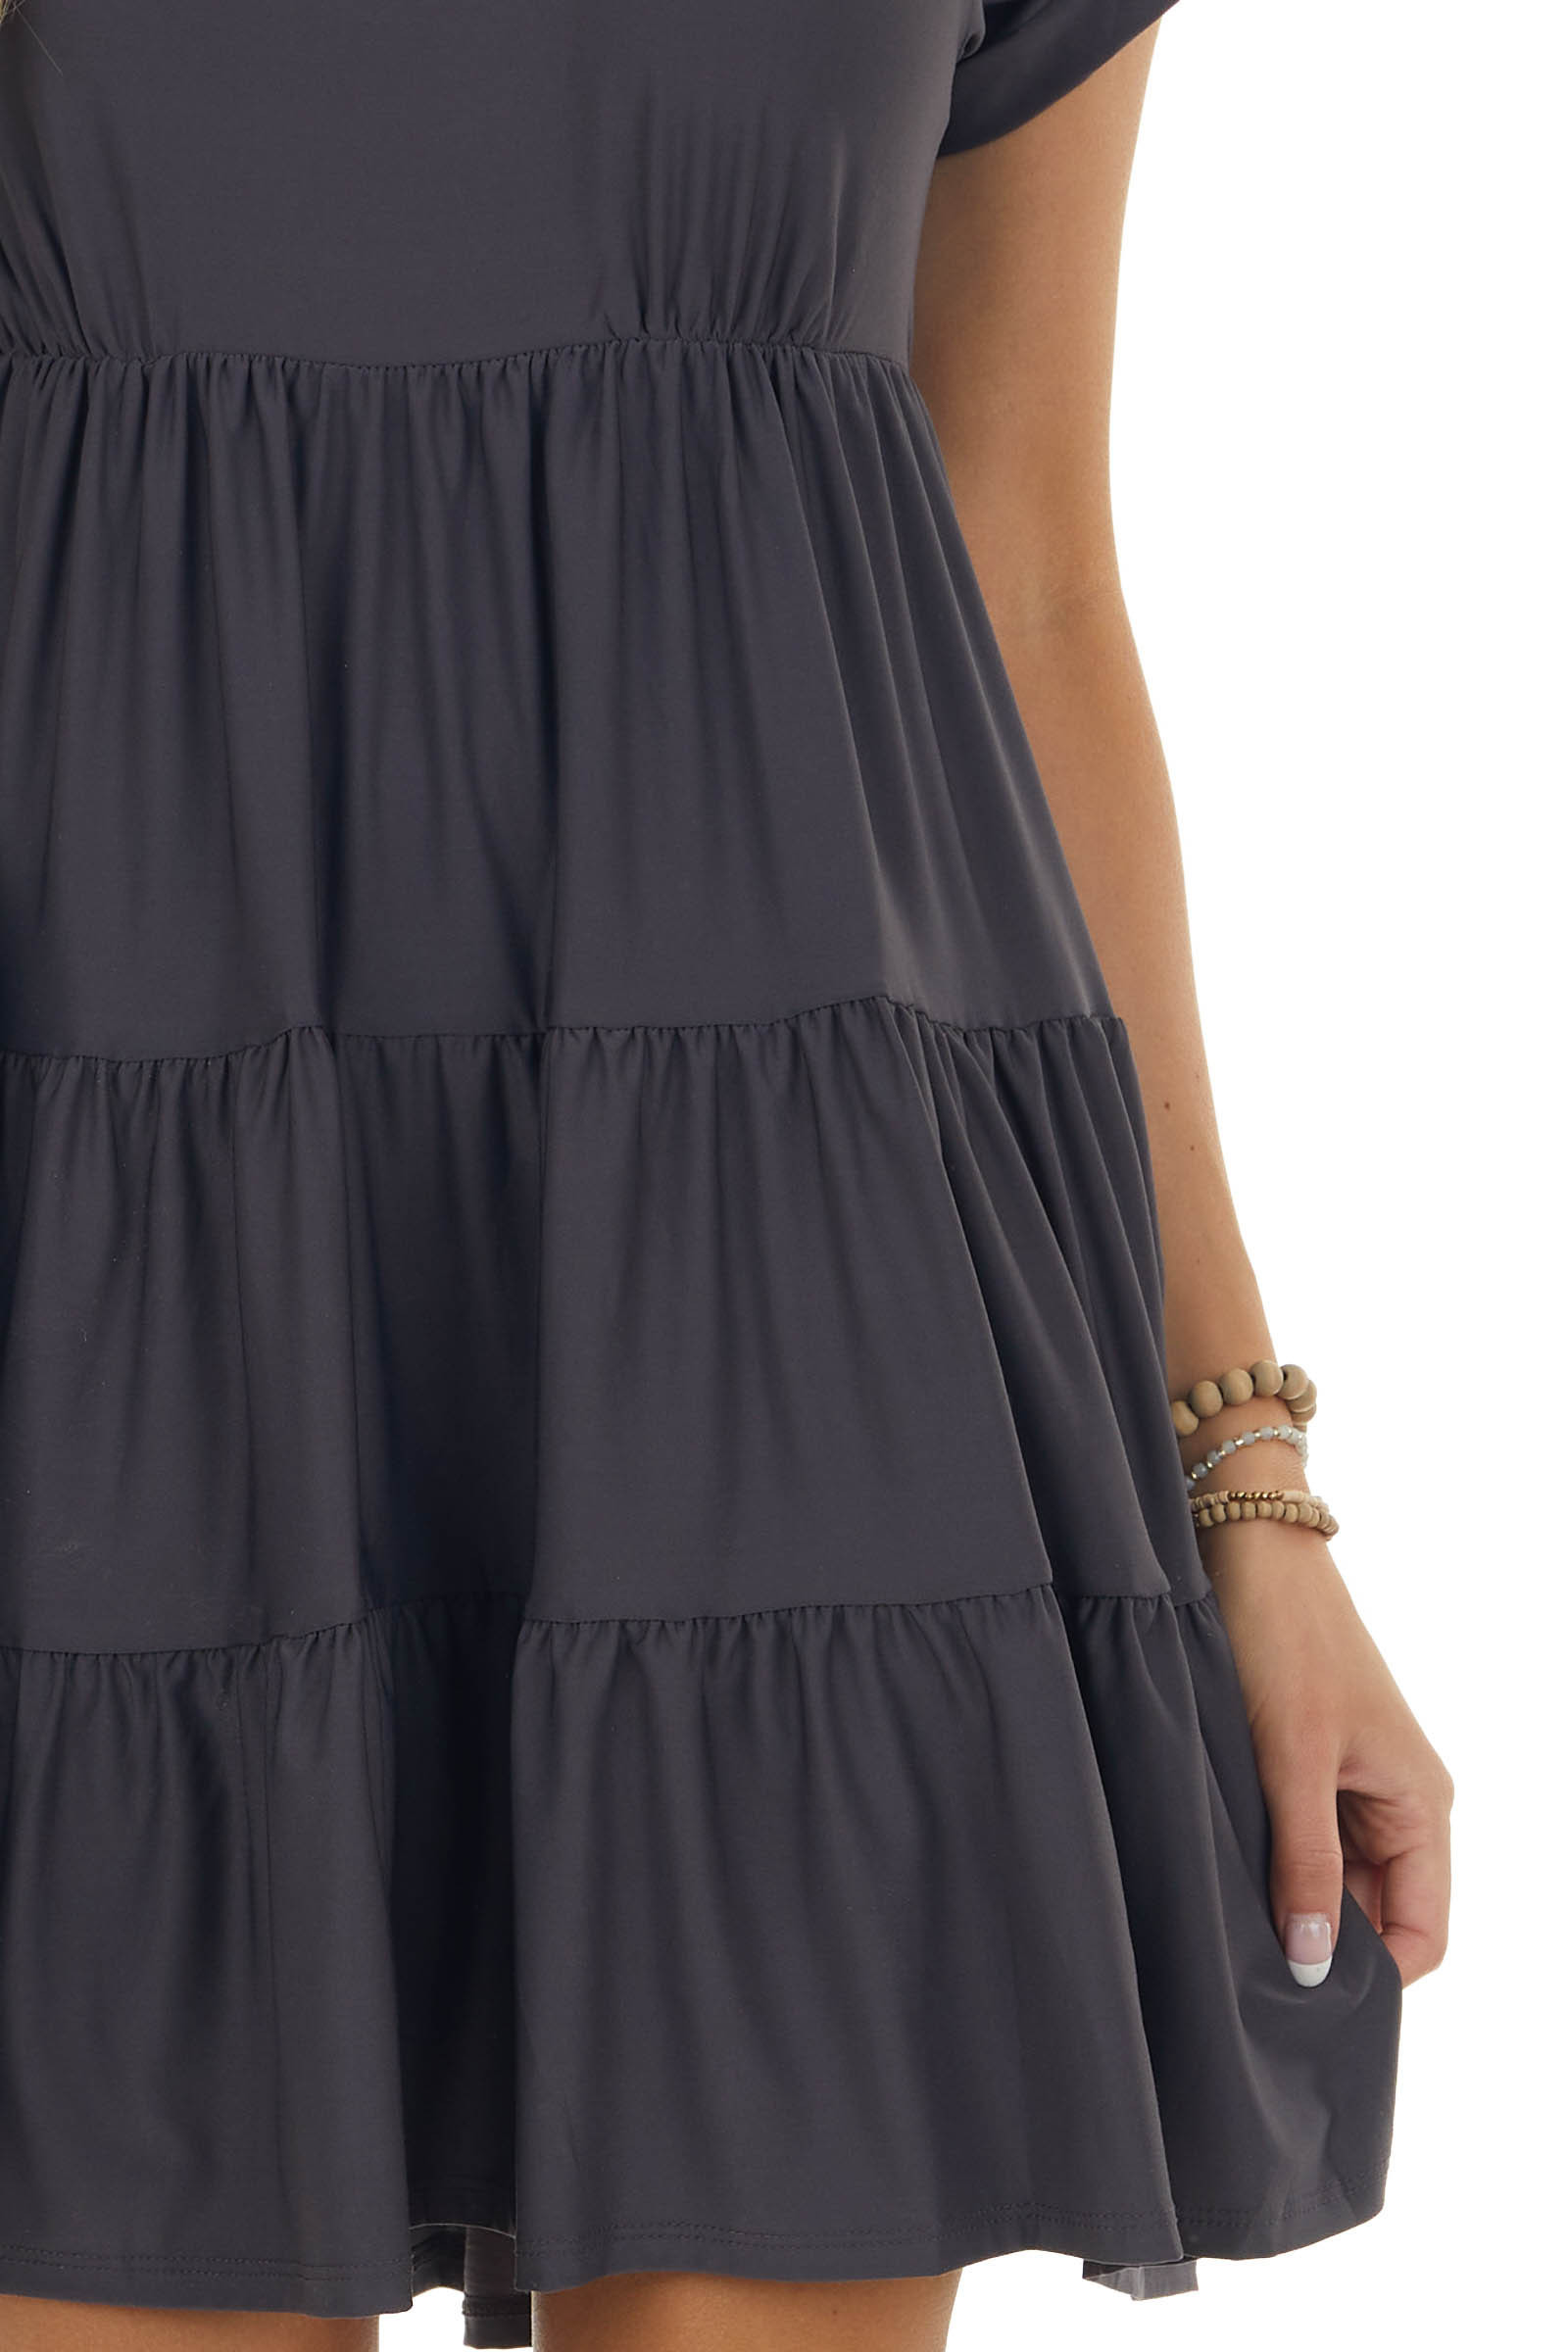 Charcoal Tiered V Neck Dress with Short Sleeves